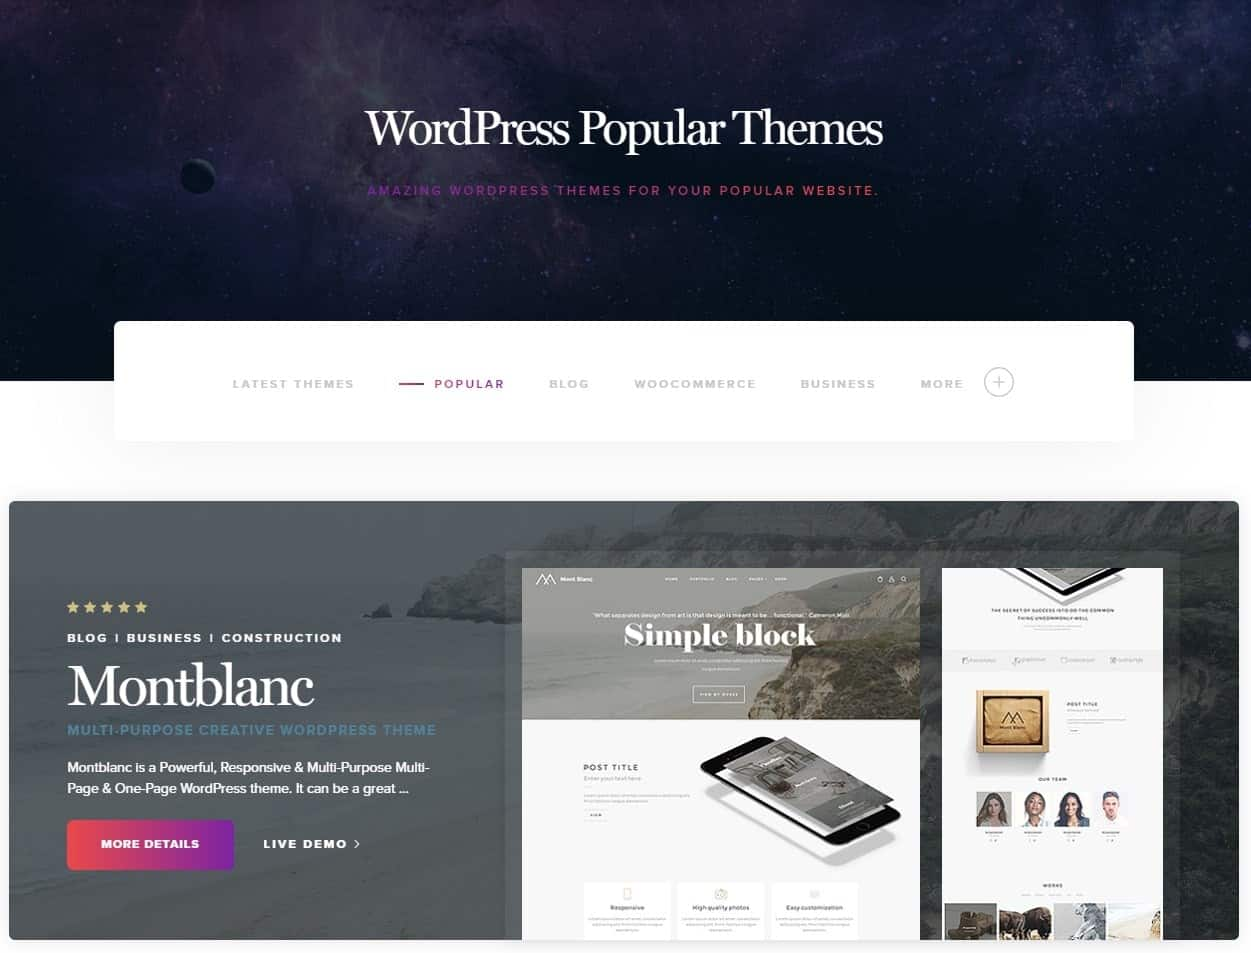 Montblanc Word Press Theme